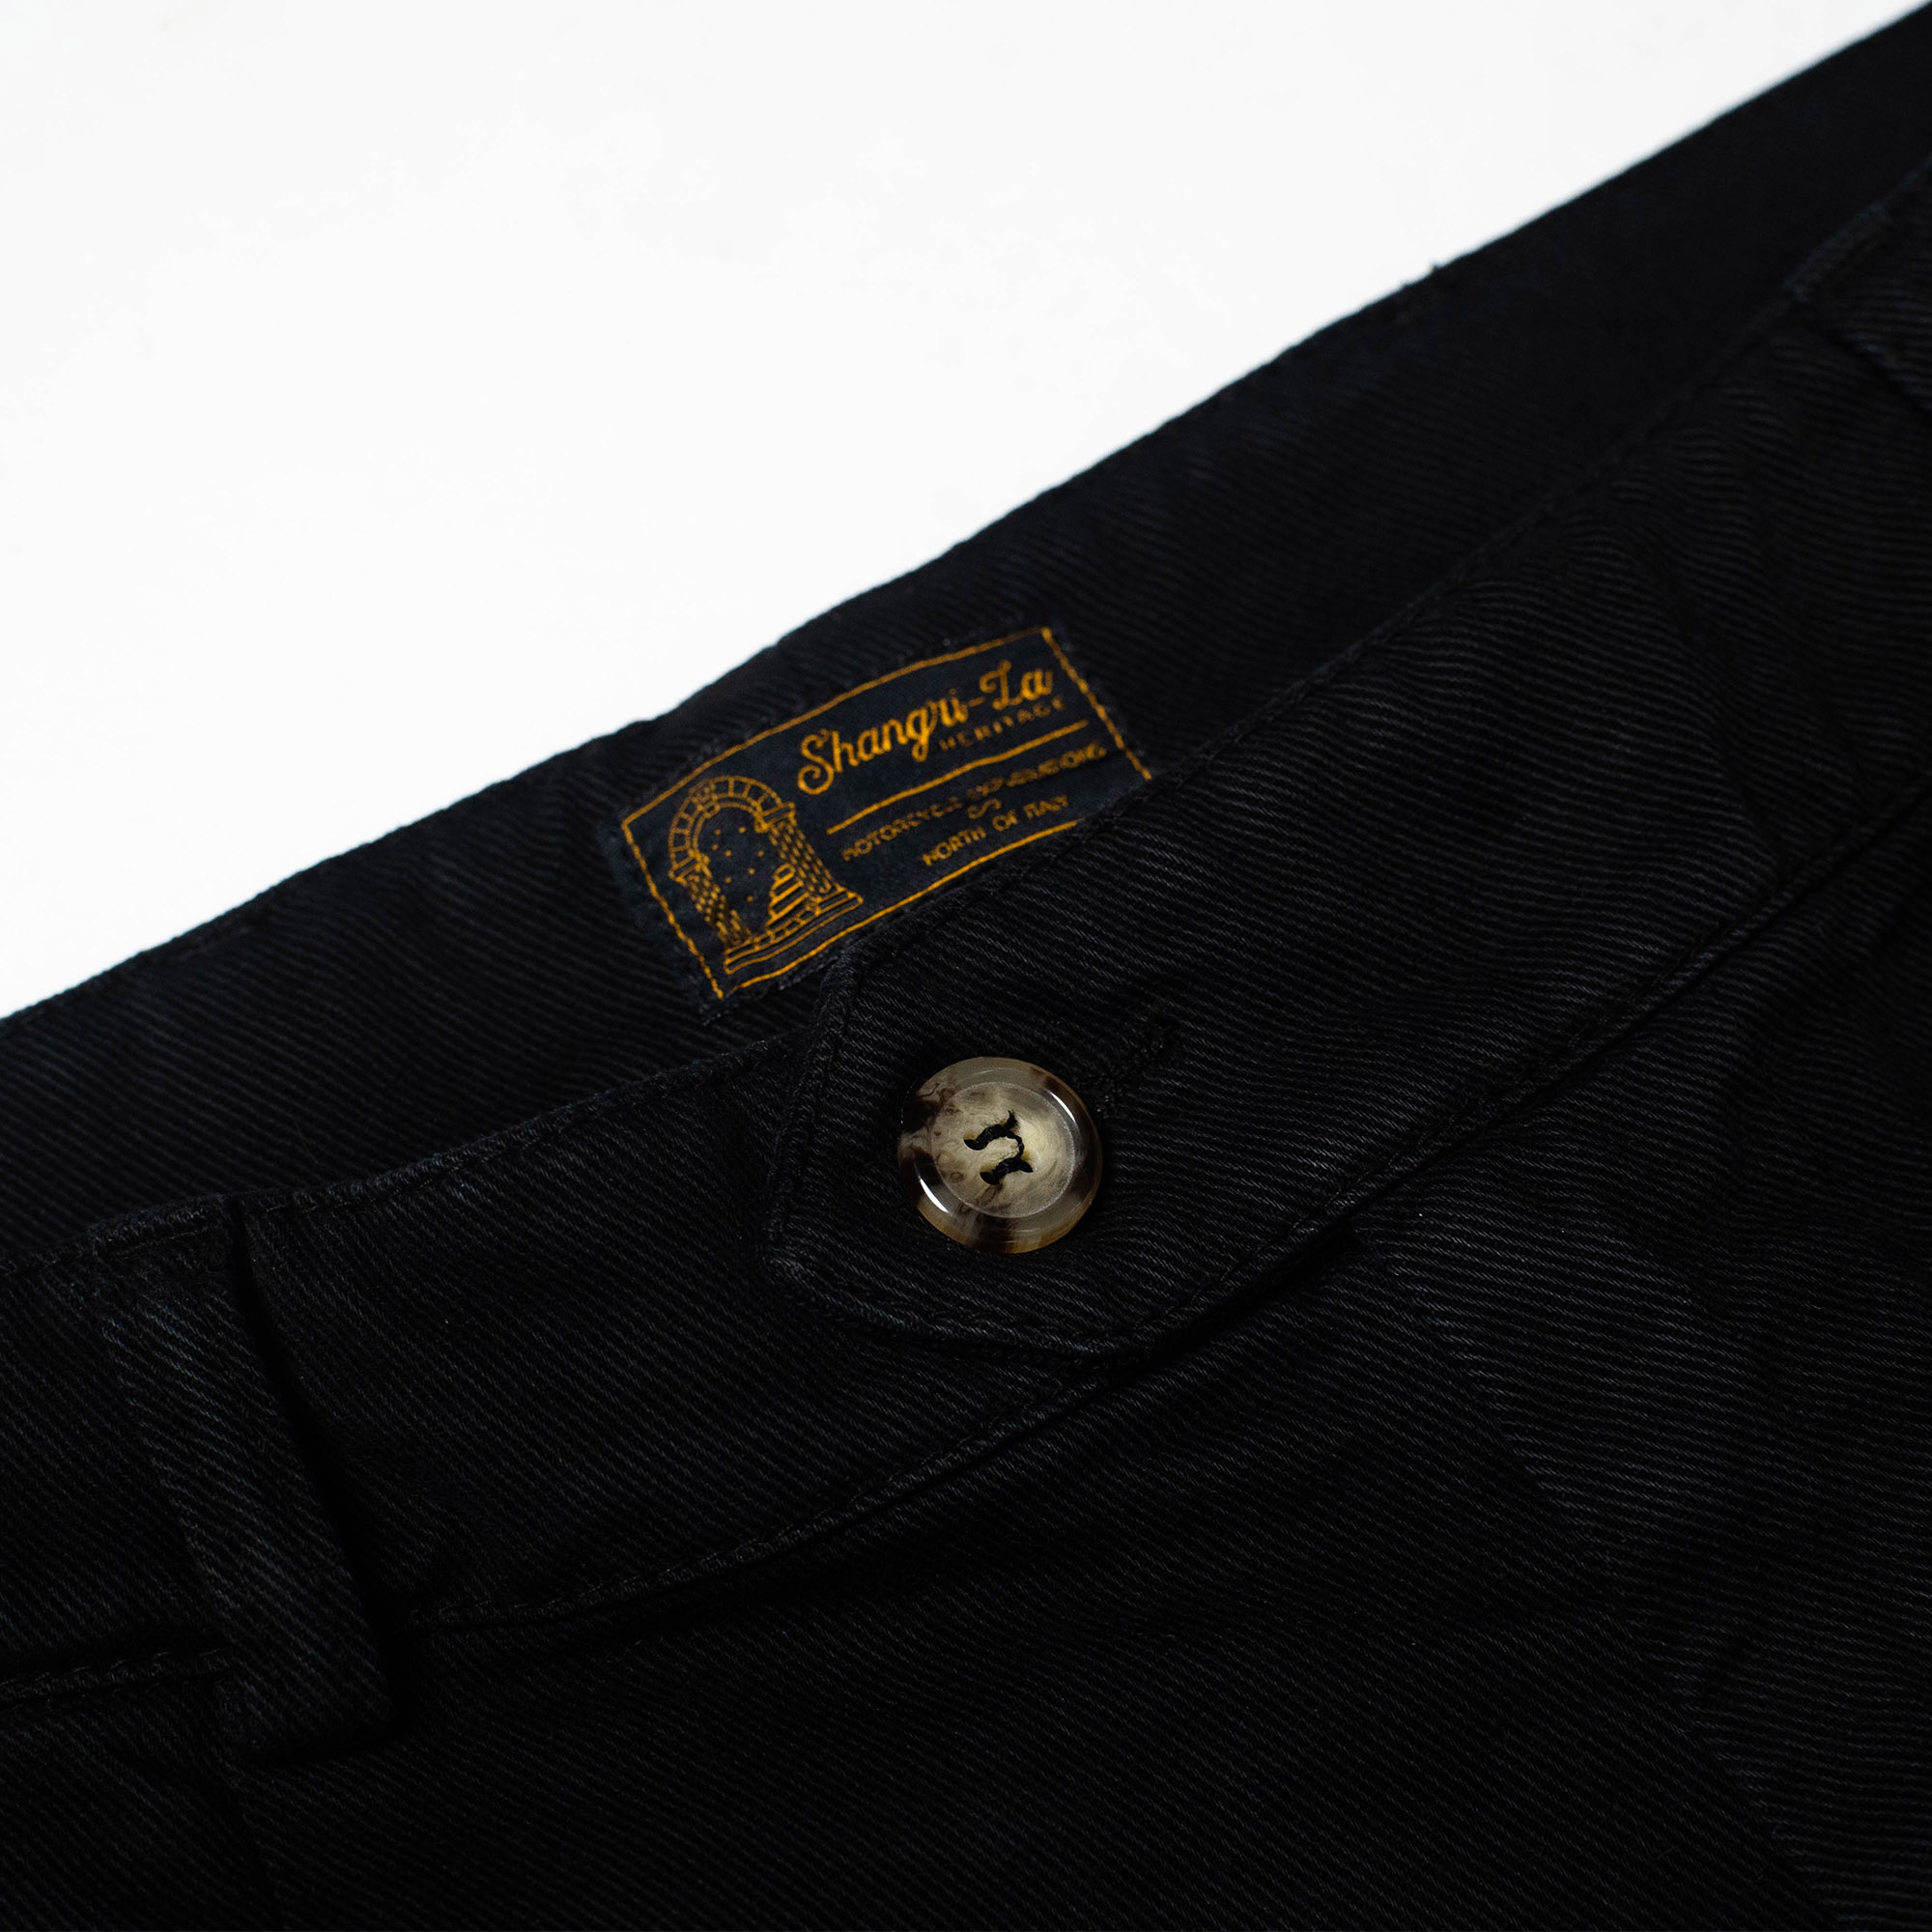 shangri-la-heritage-explorator-black-cotton-twill-pants-still-life-label